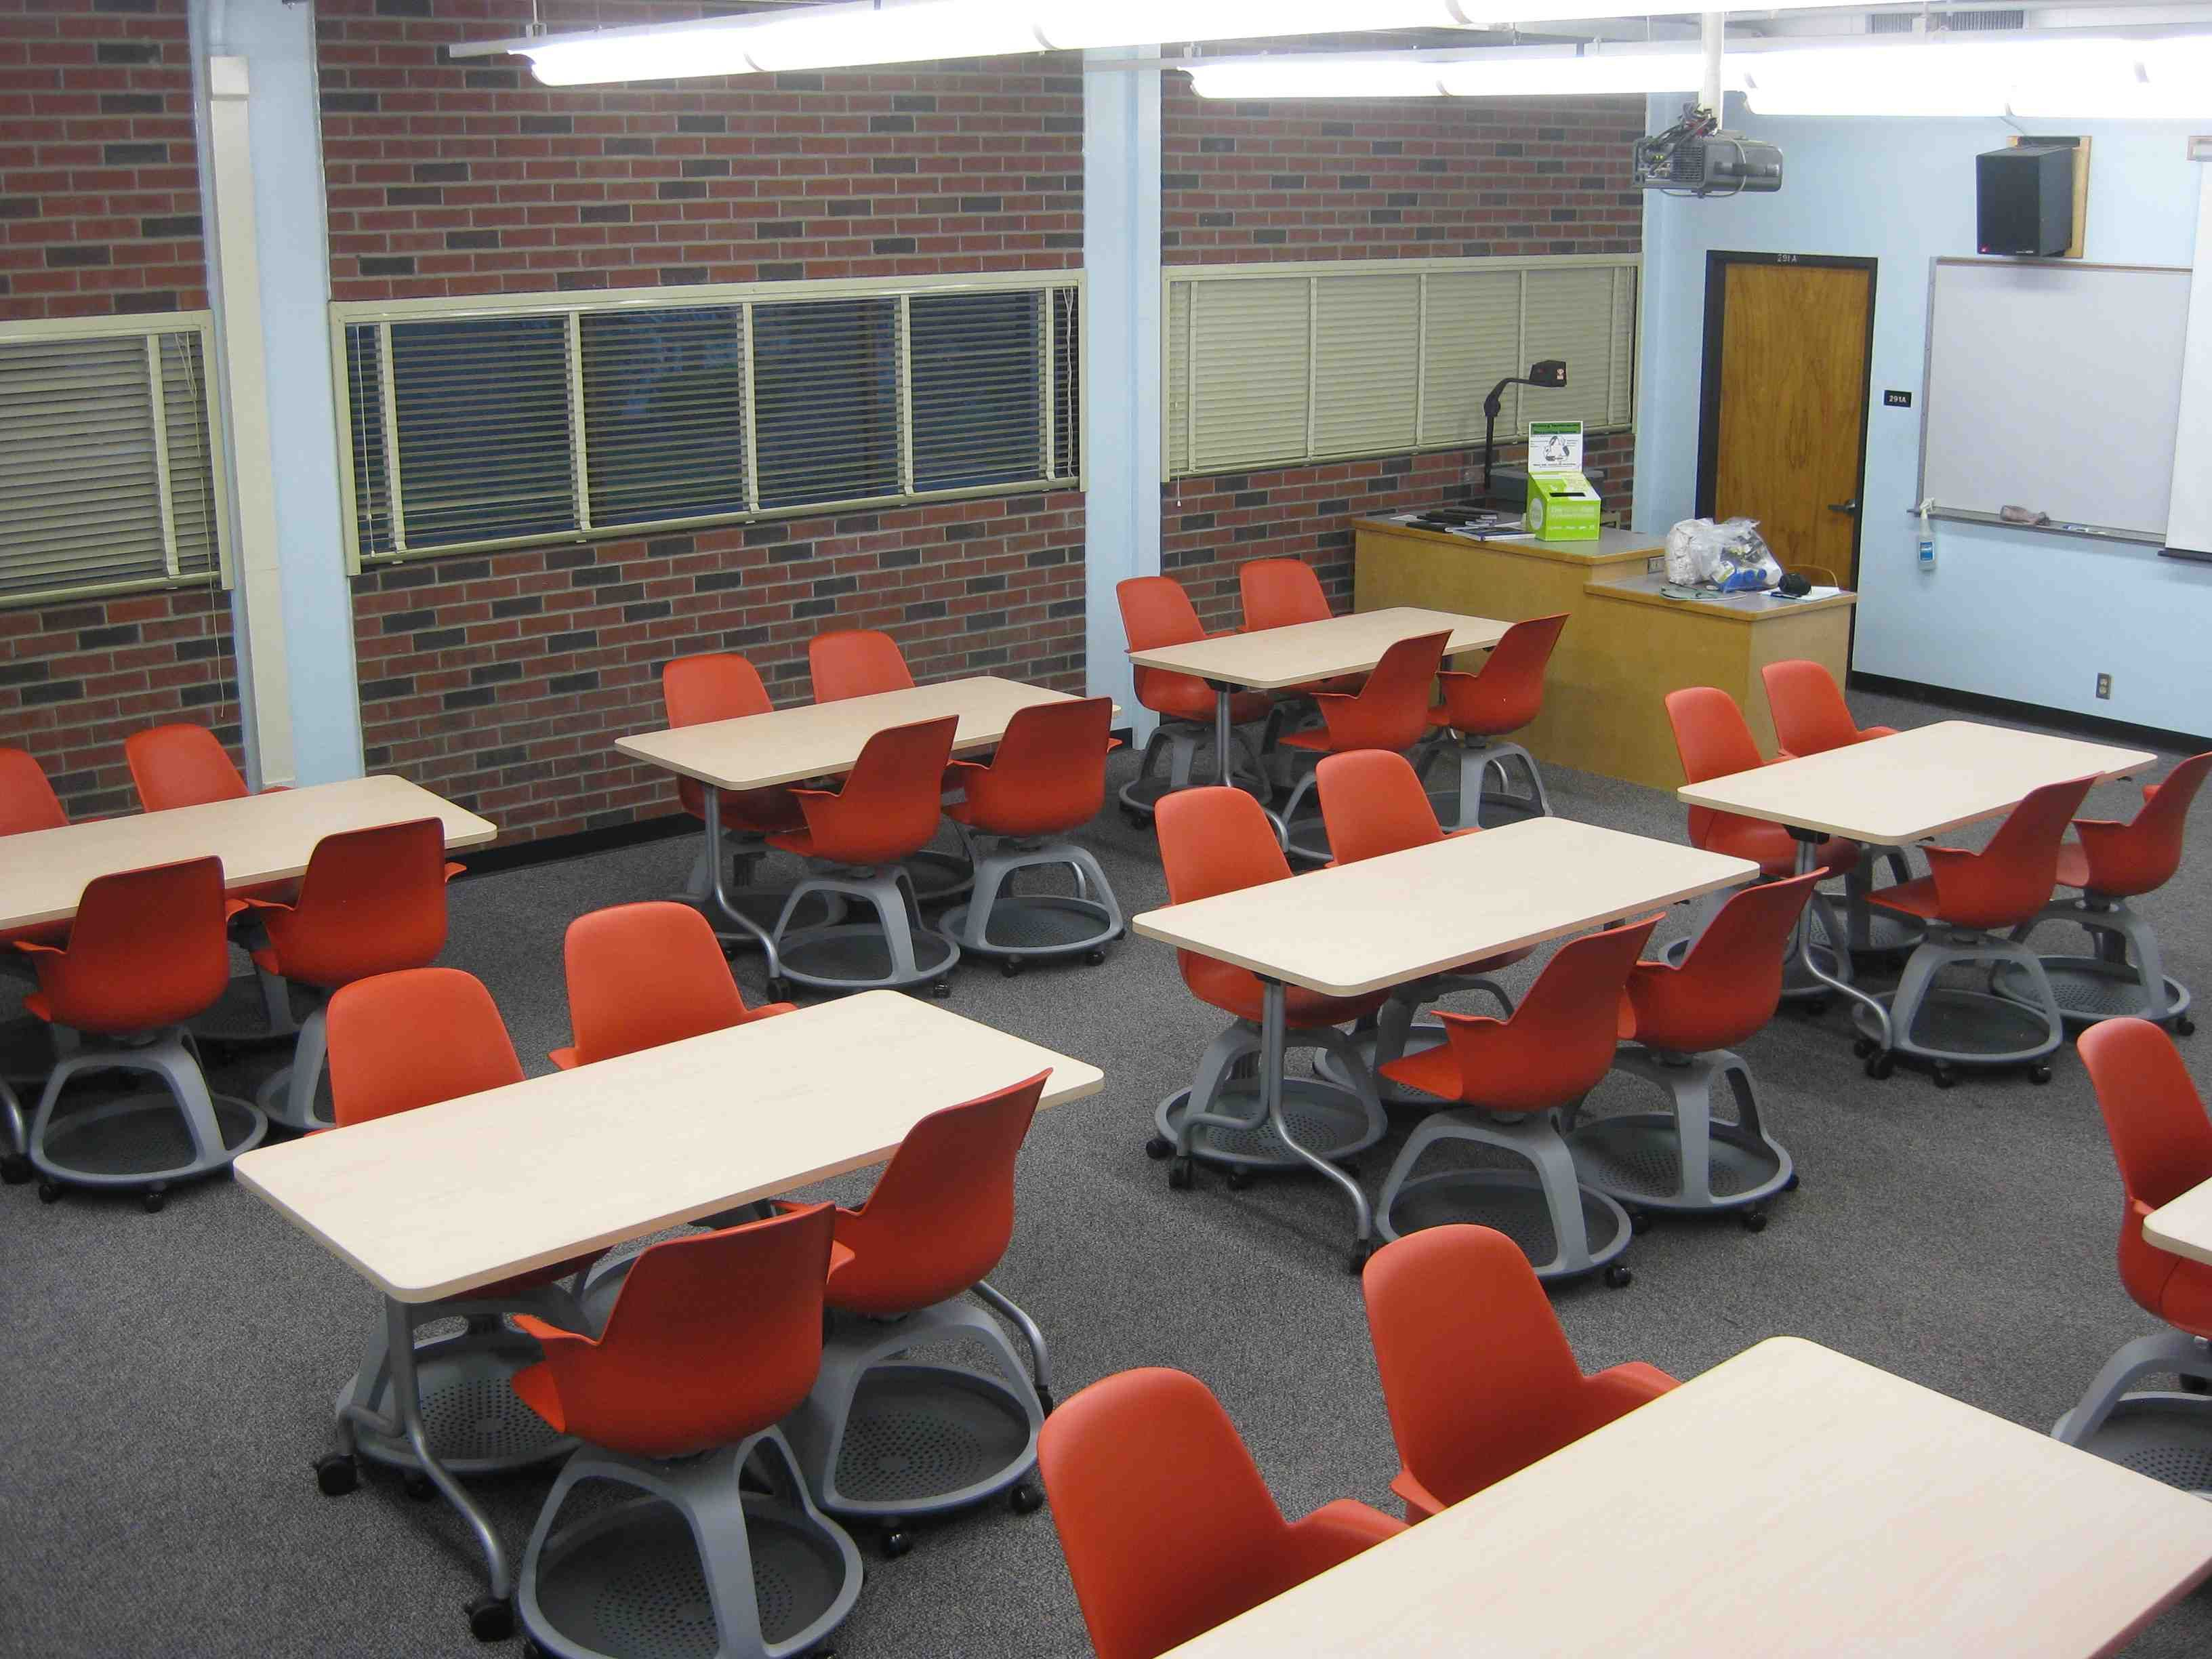 Movable Tables Chairs Classroom Instruction Chico Ca State University Classroom Instruction Movable Table Classroom Chairs